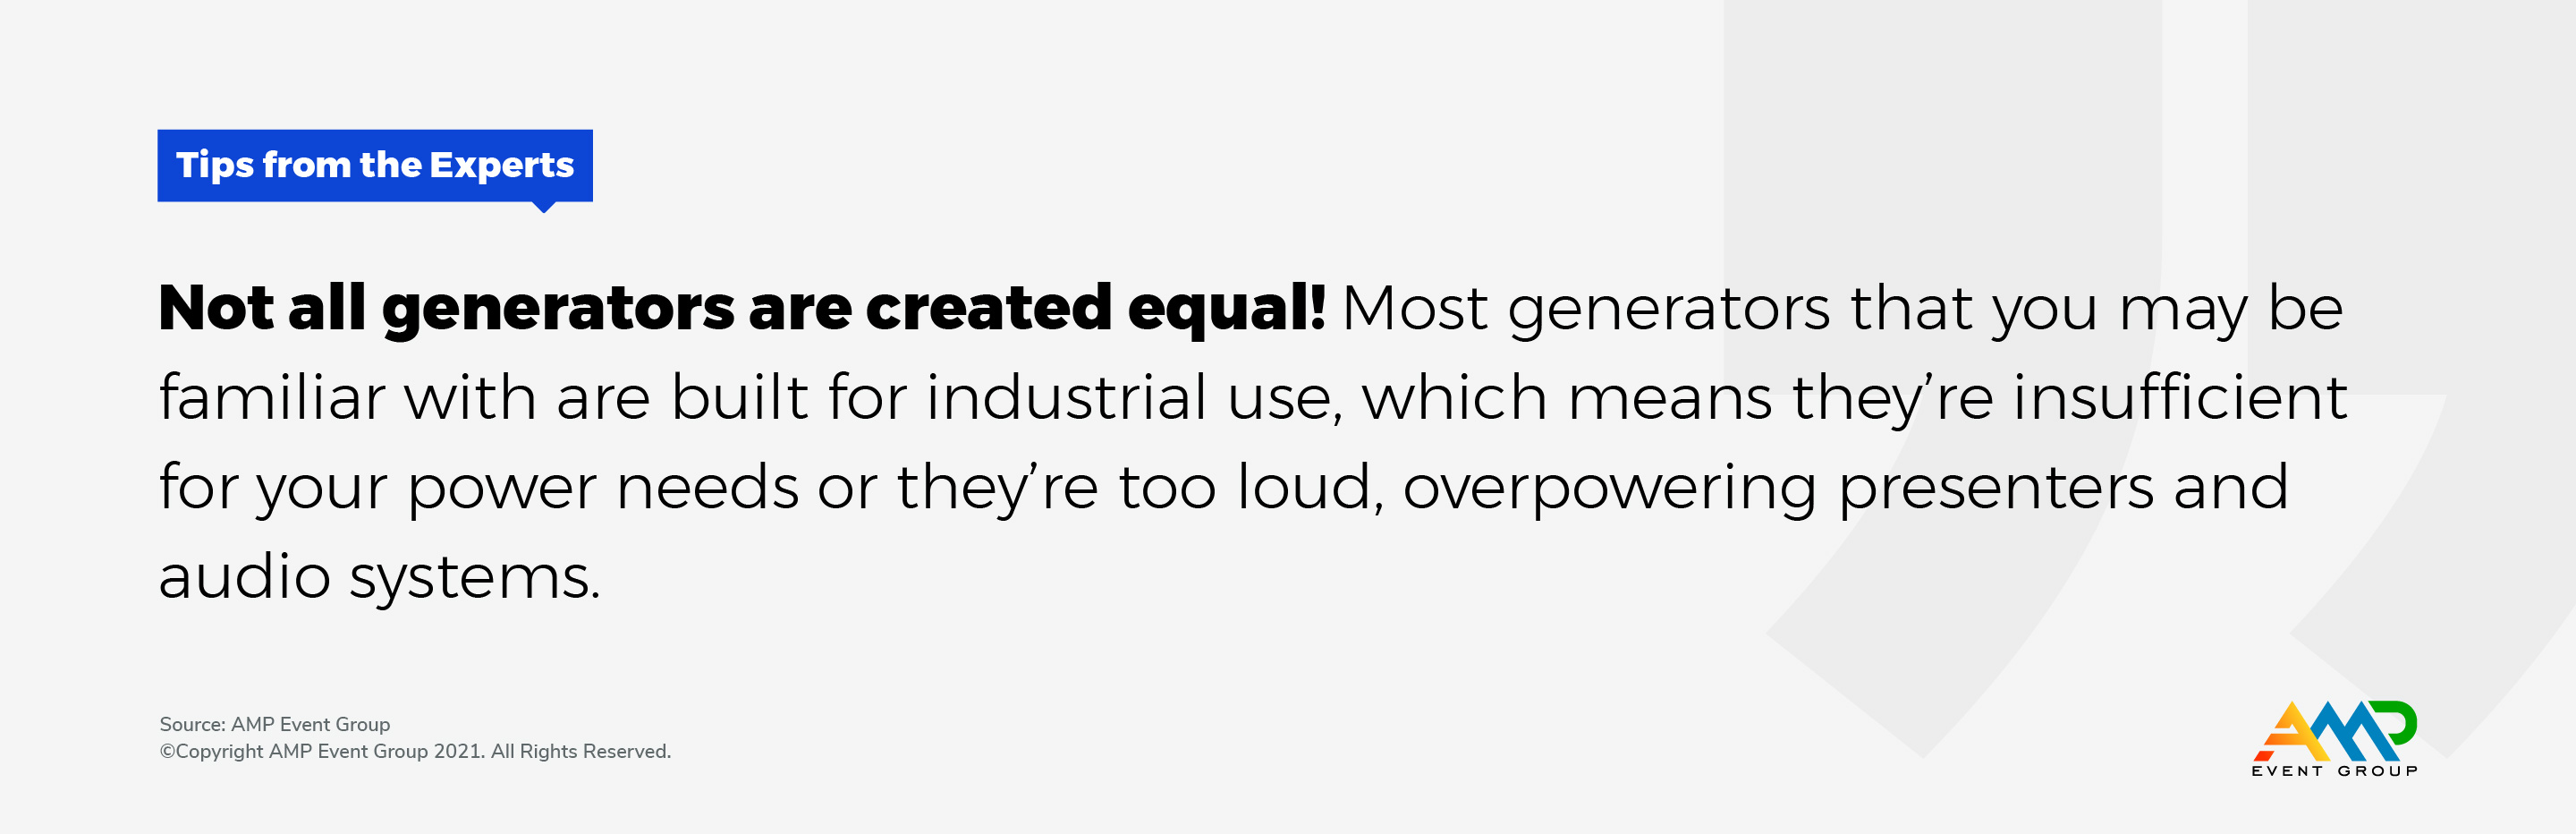 Not all generators are created equal. An important tip when planning an outdoor event.